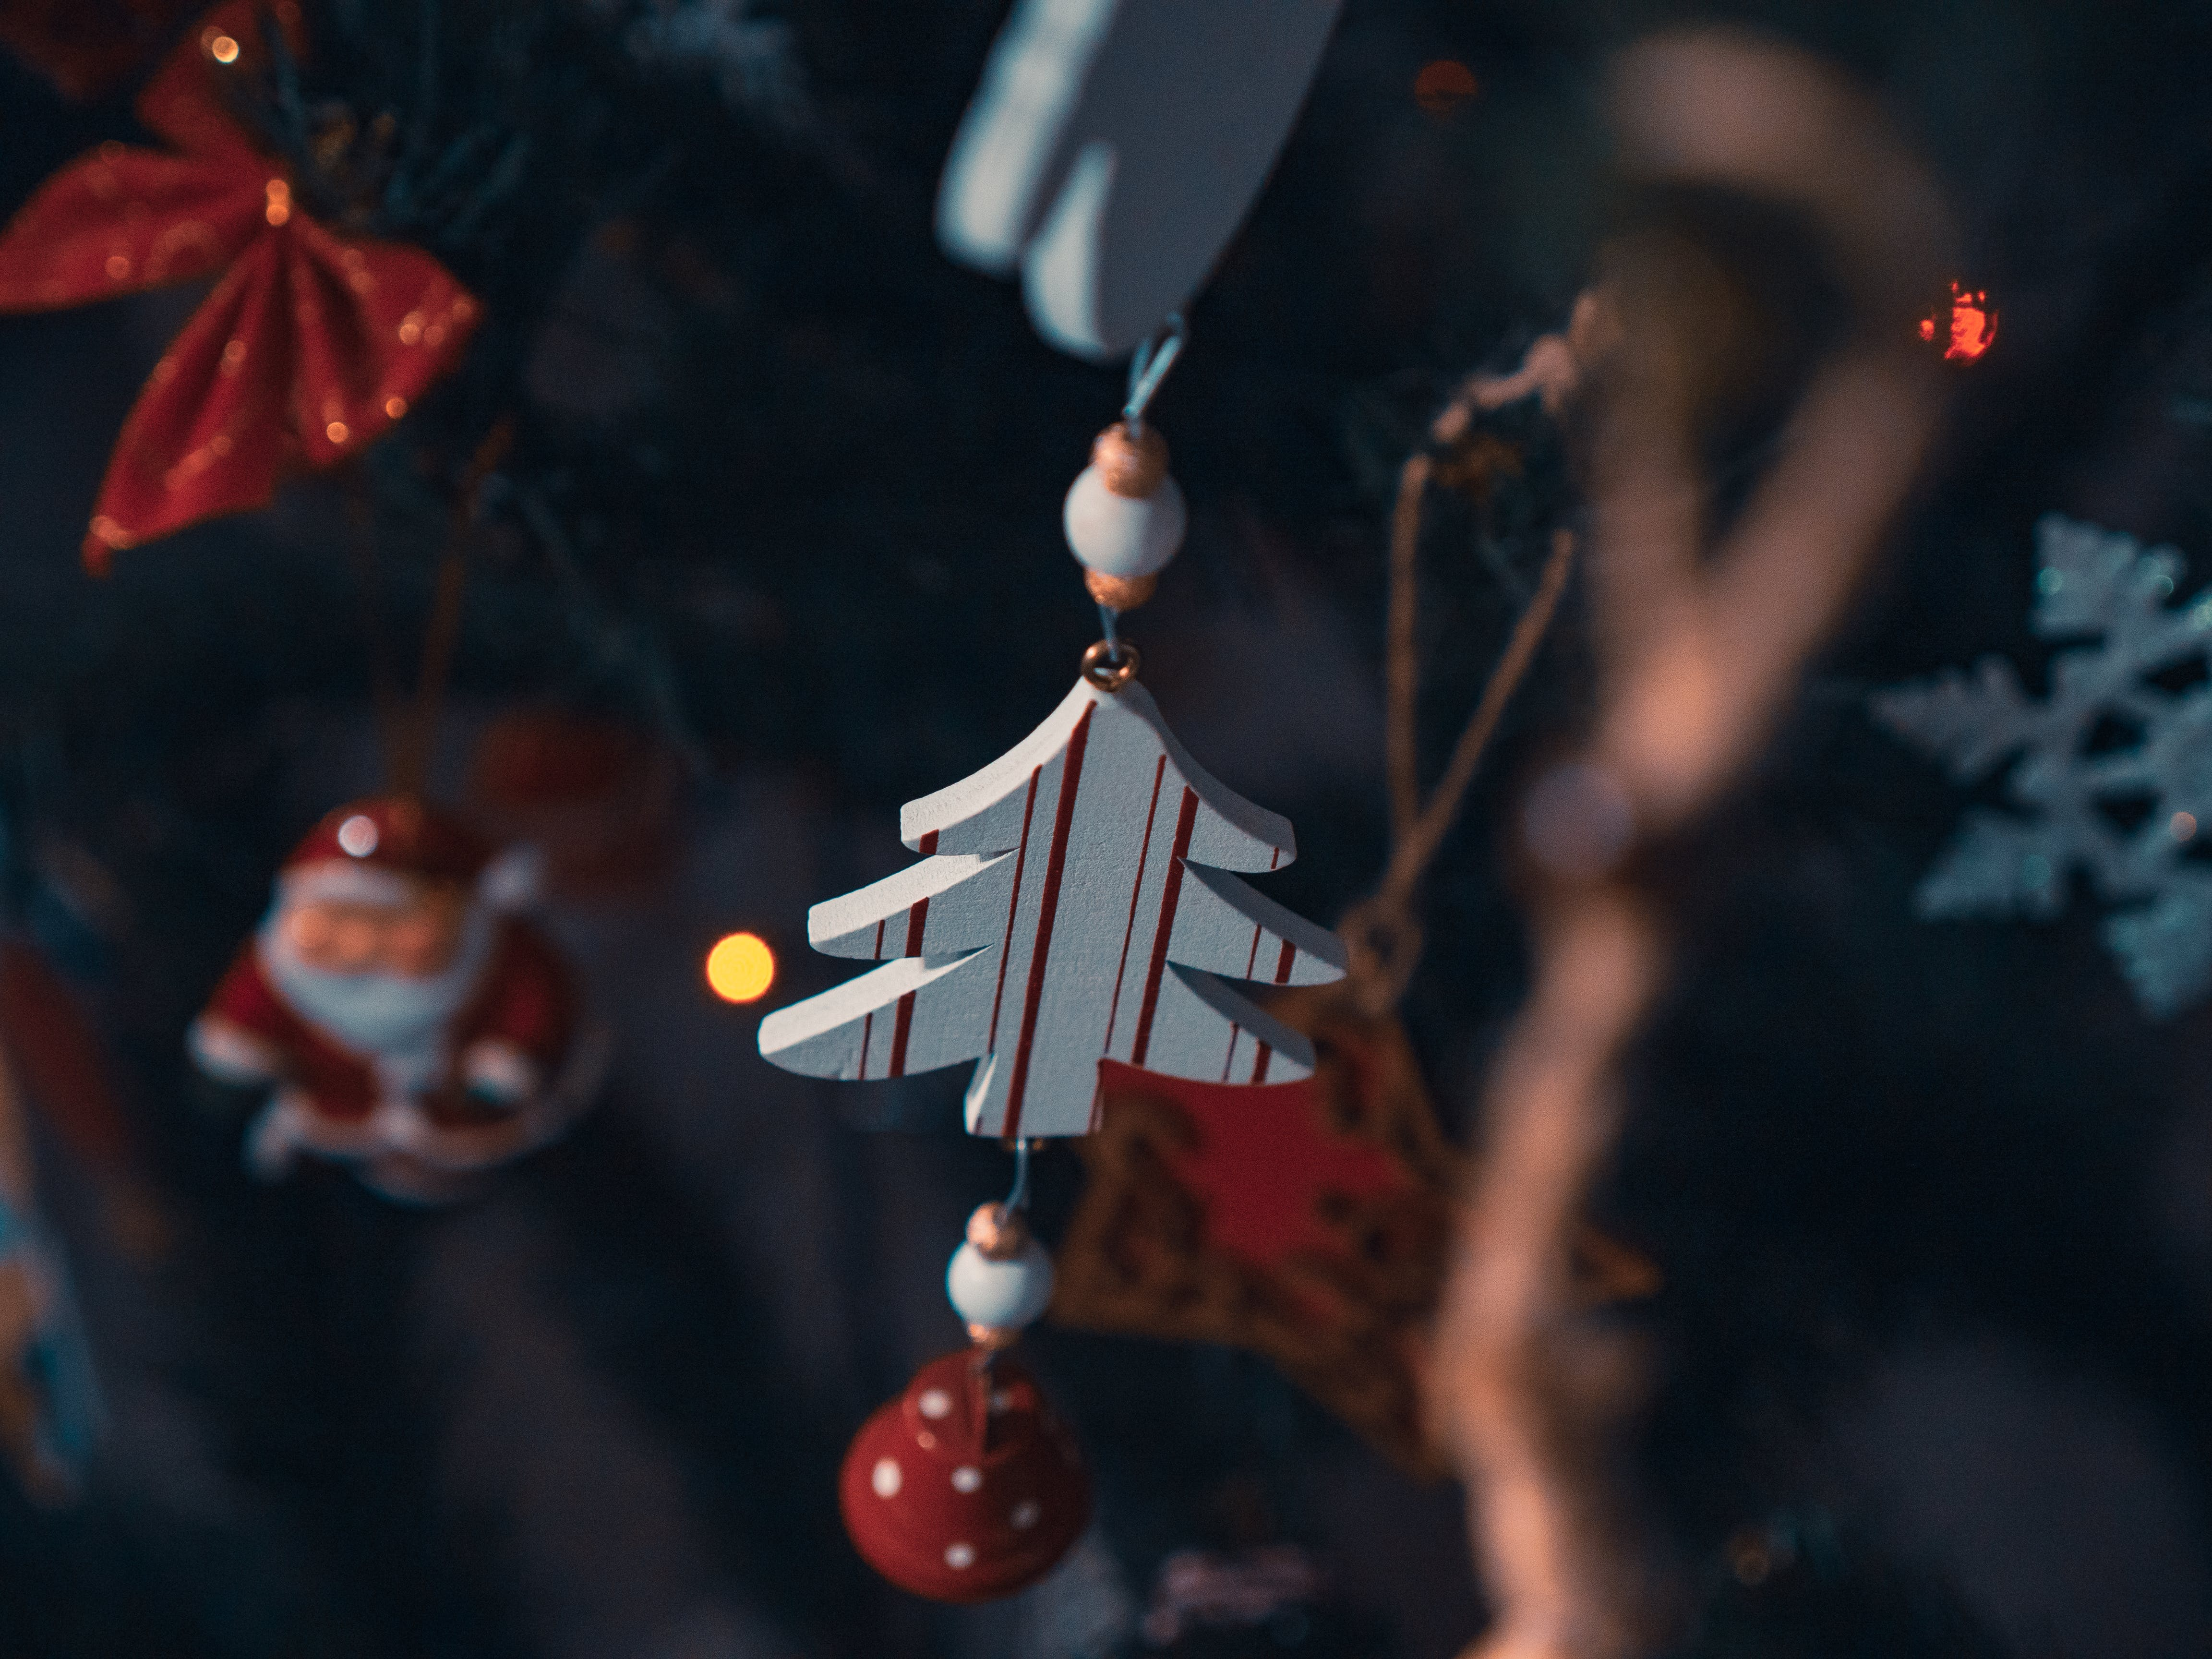 Close-Up Photo of Christmas Tree Ornaments